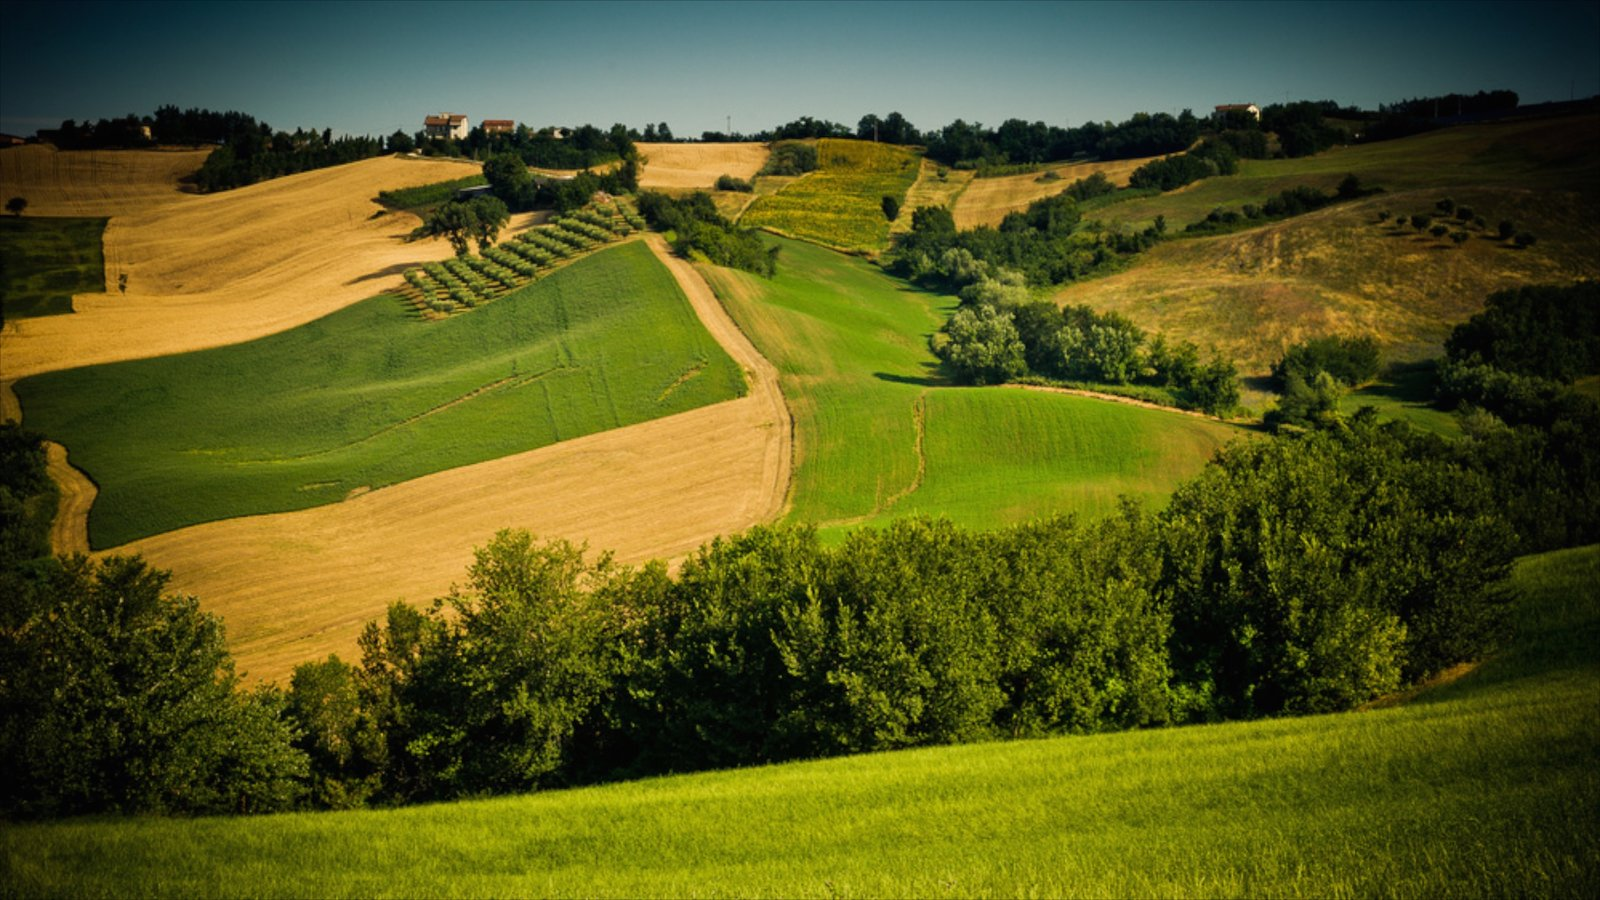 Sirolo featuring farmland and tranquil scenes